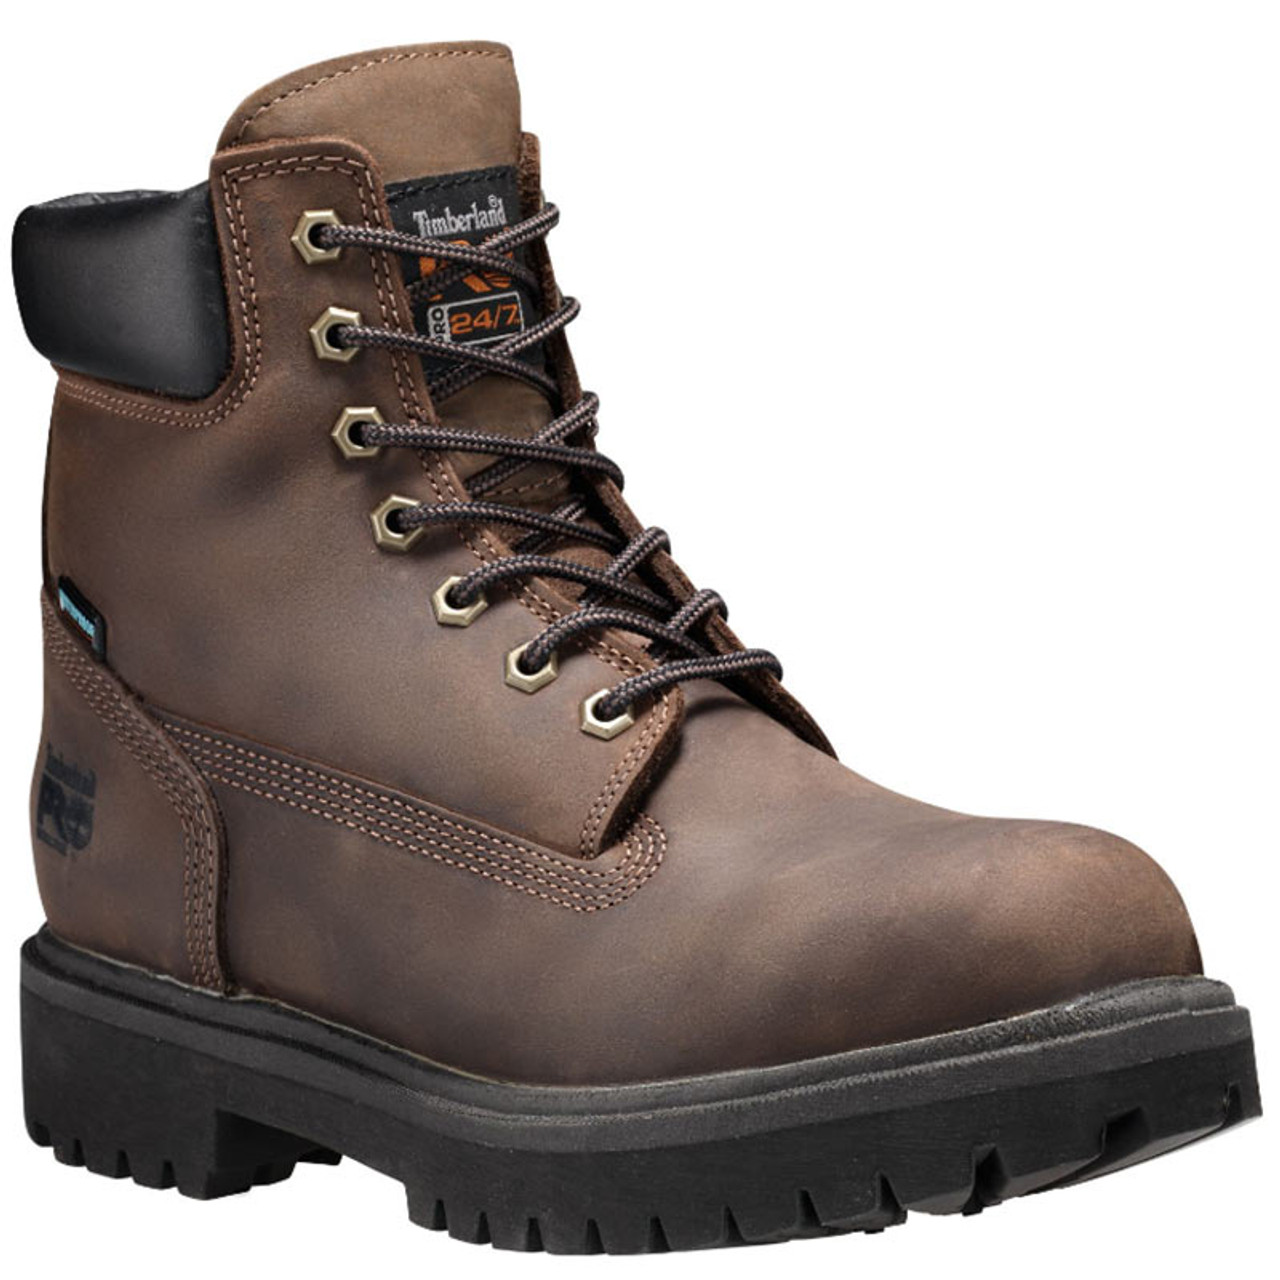 direct attach boots